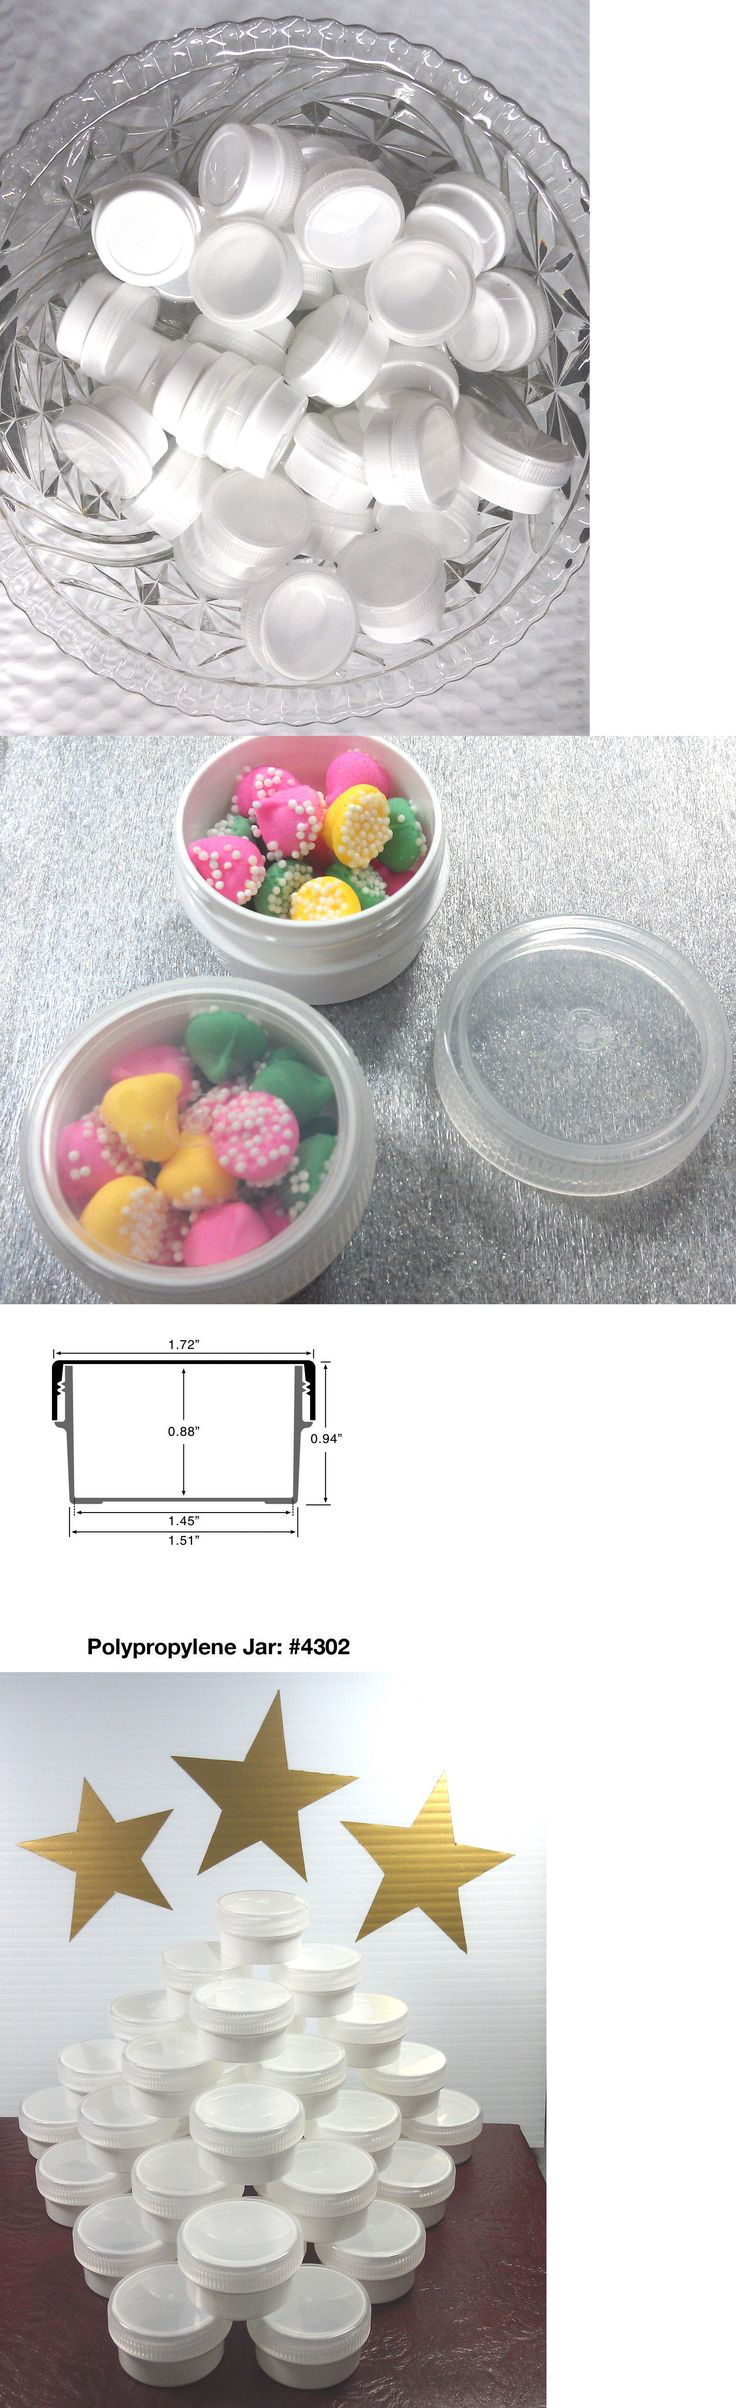 Storage and Display 83893: 100 White Jewelry Jars With Clear Caps - Great For Rings! Screw Cap Stays Closed -> BUY IT NOW ONLY: $49.5 on eBay!